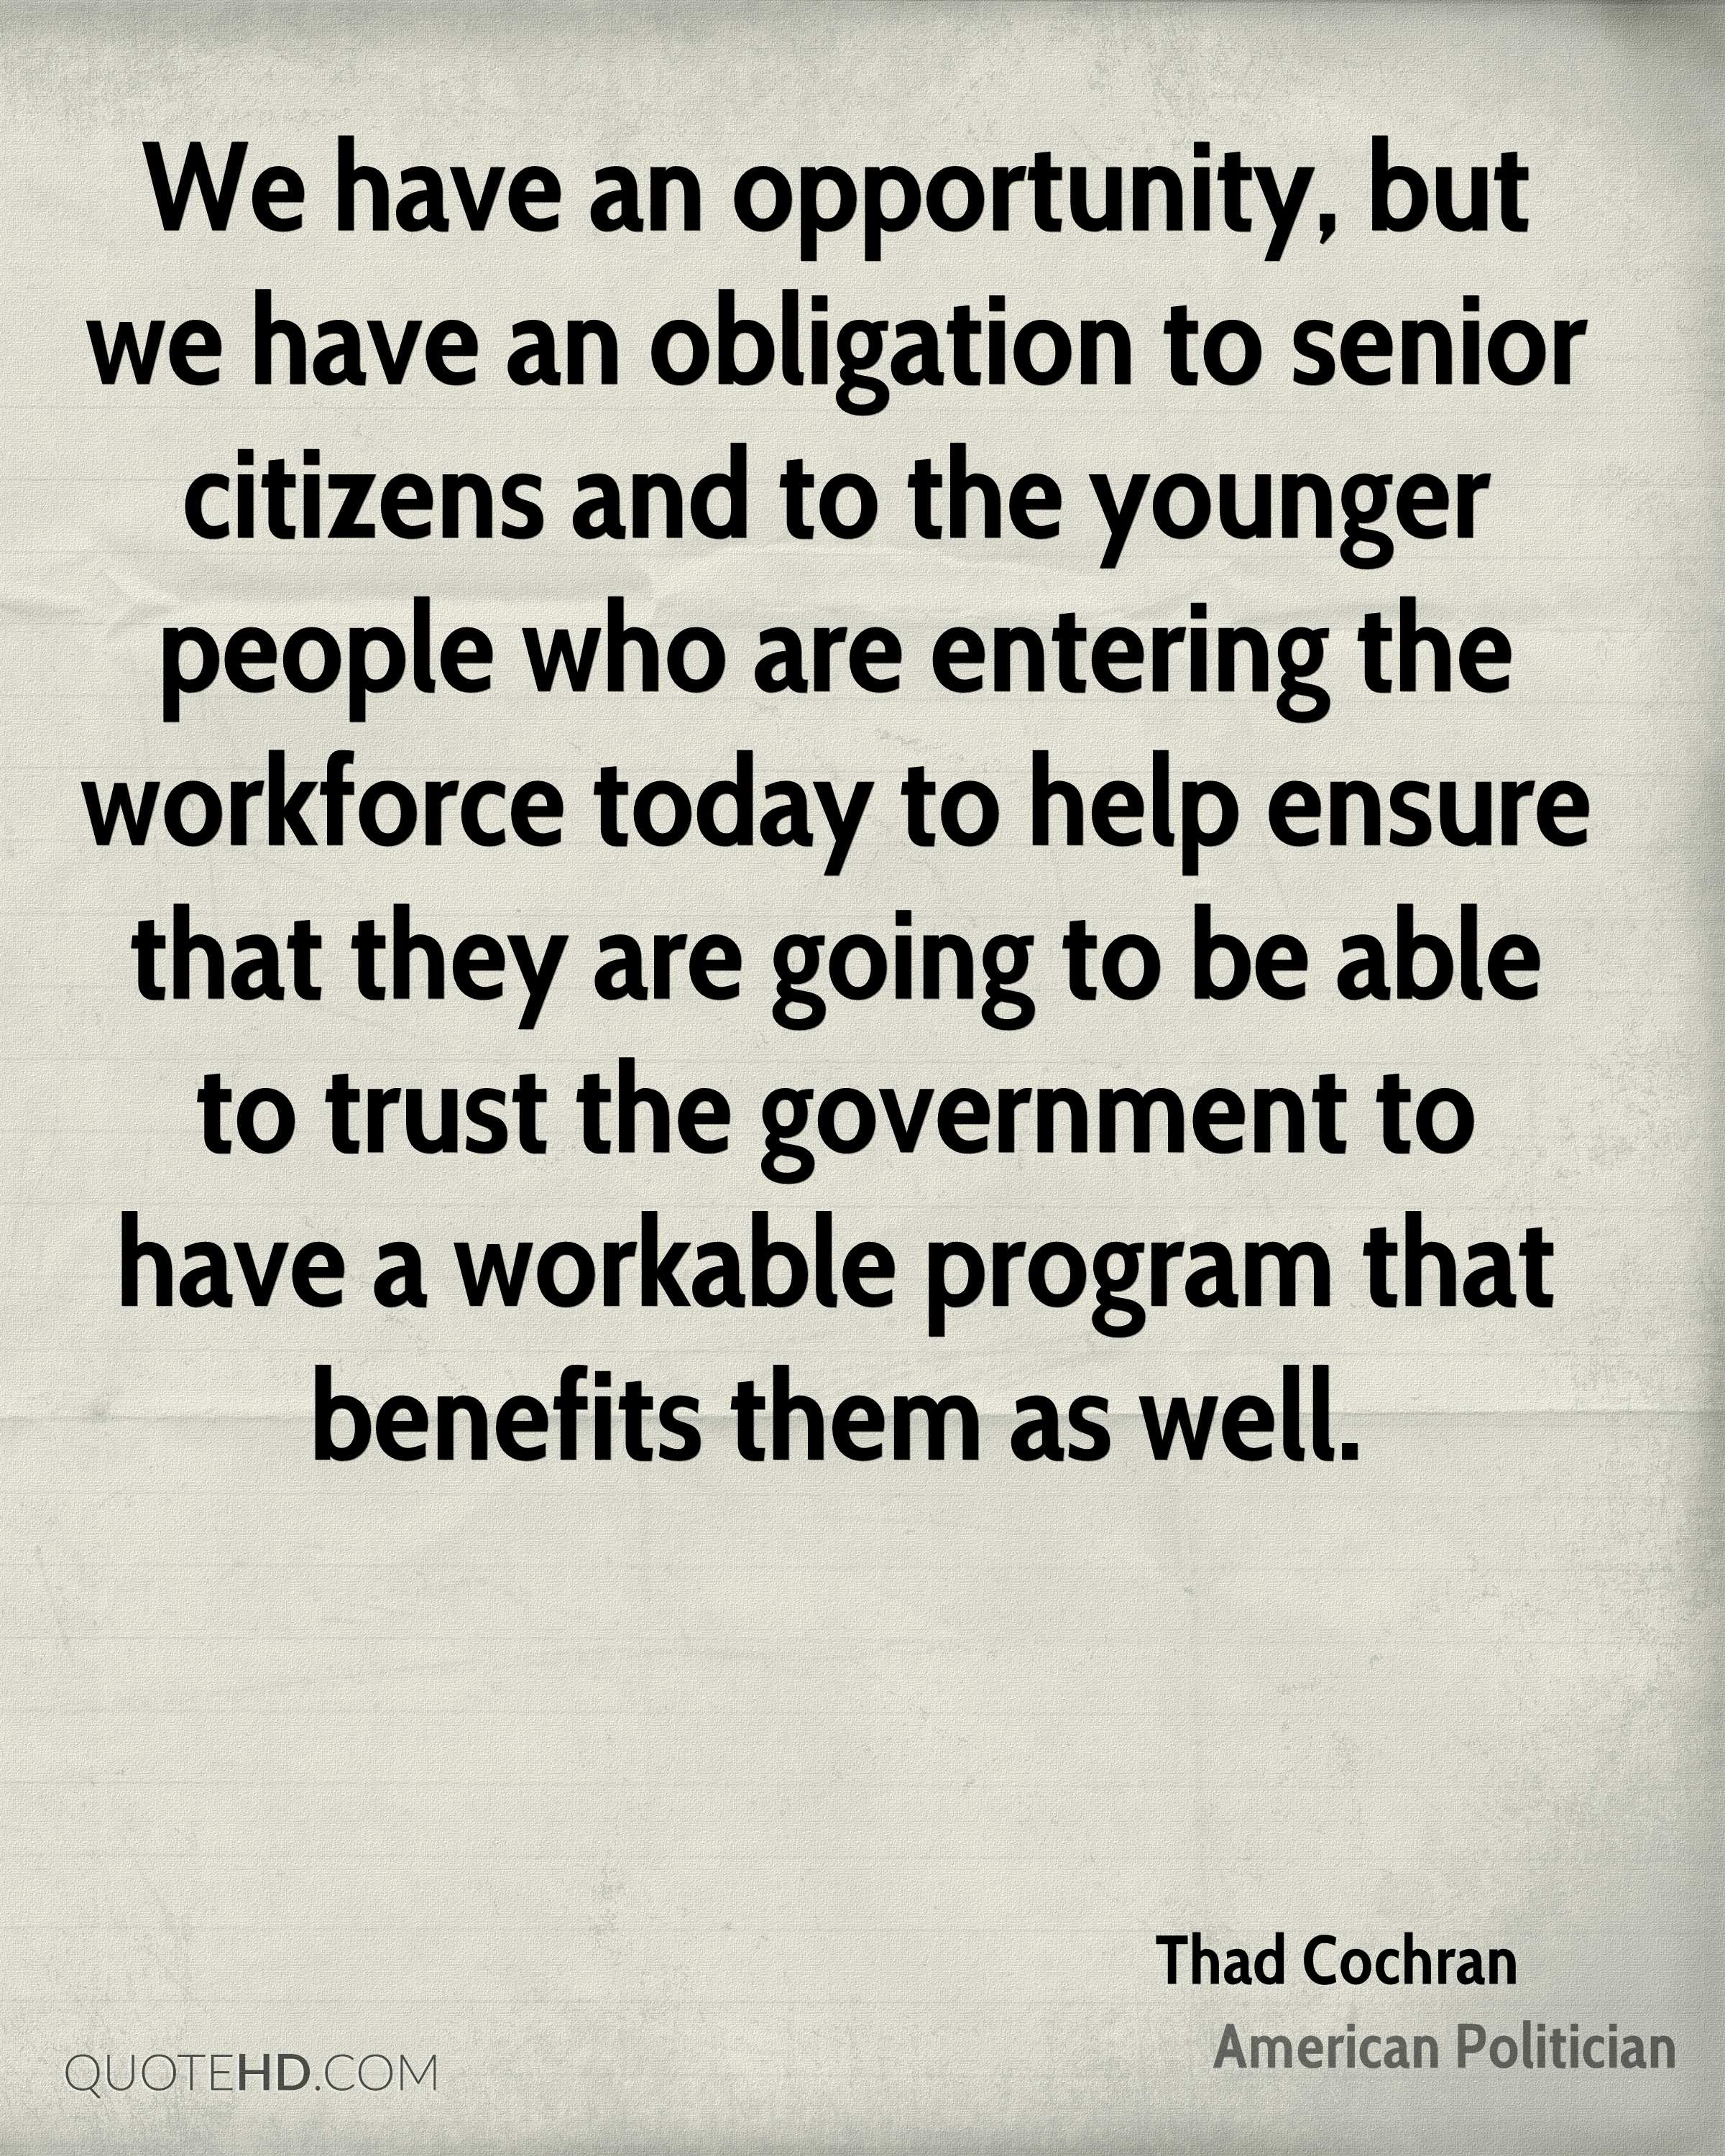 We have an opportunity, but we have an obligation to senior citizens and to the younger people who are entering the workforce today to help ensure that they are going to be able to trust the government to have a workable program that benefits them as well.